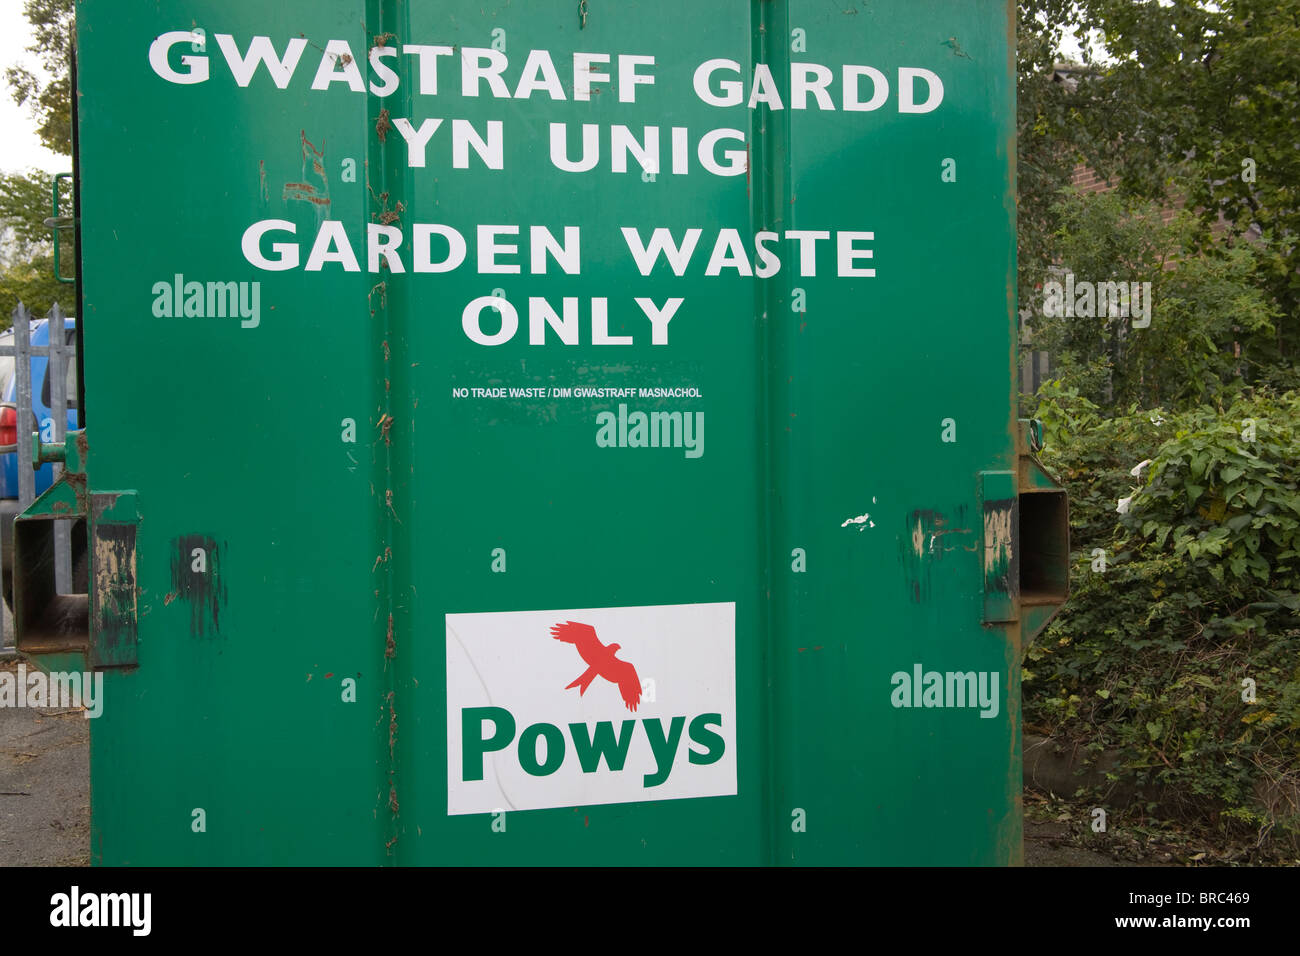 Powys Wales UK Container for recycling garden waste - Stock Image